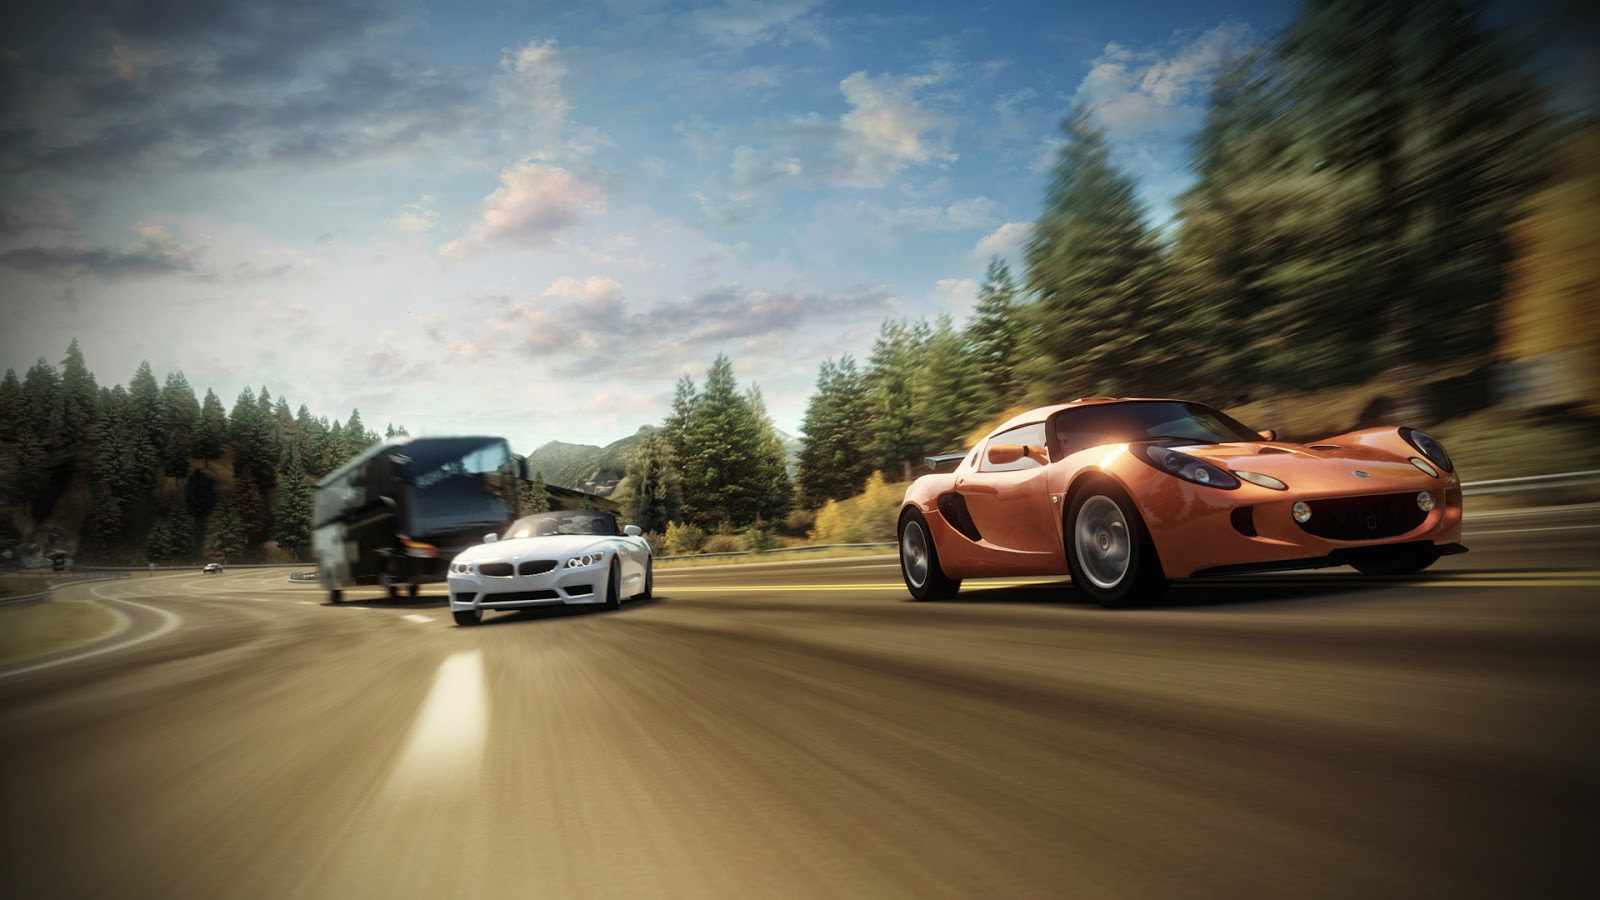 Forza Horizon HD & Widescreen Wallpaper 0.159256543505219